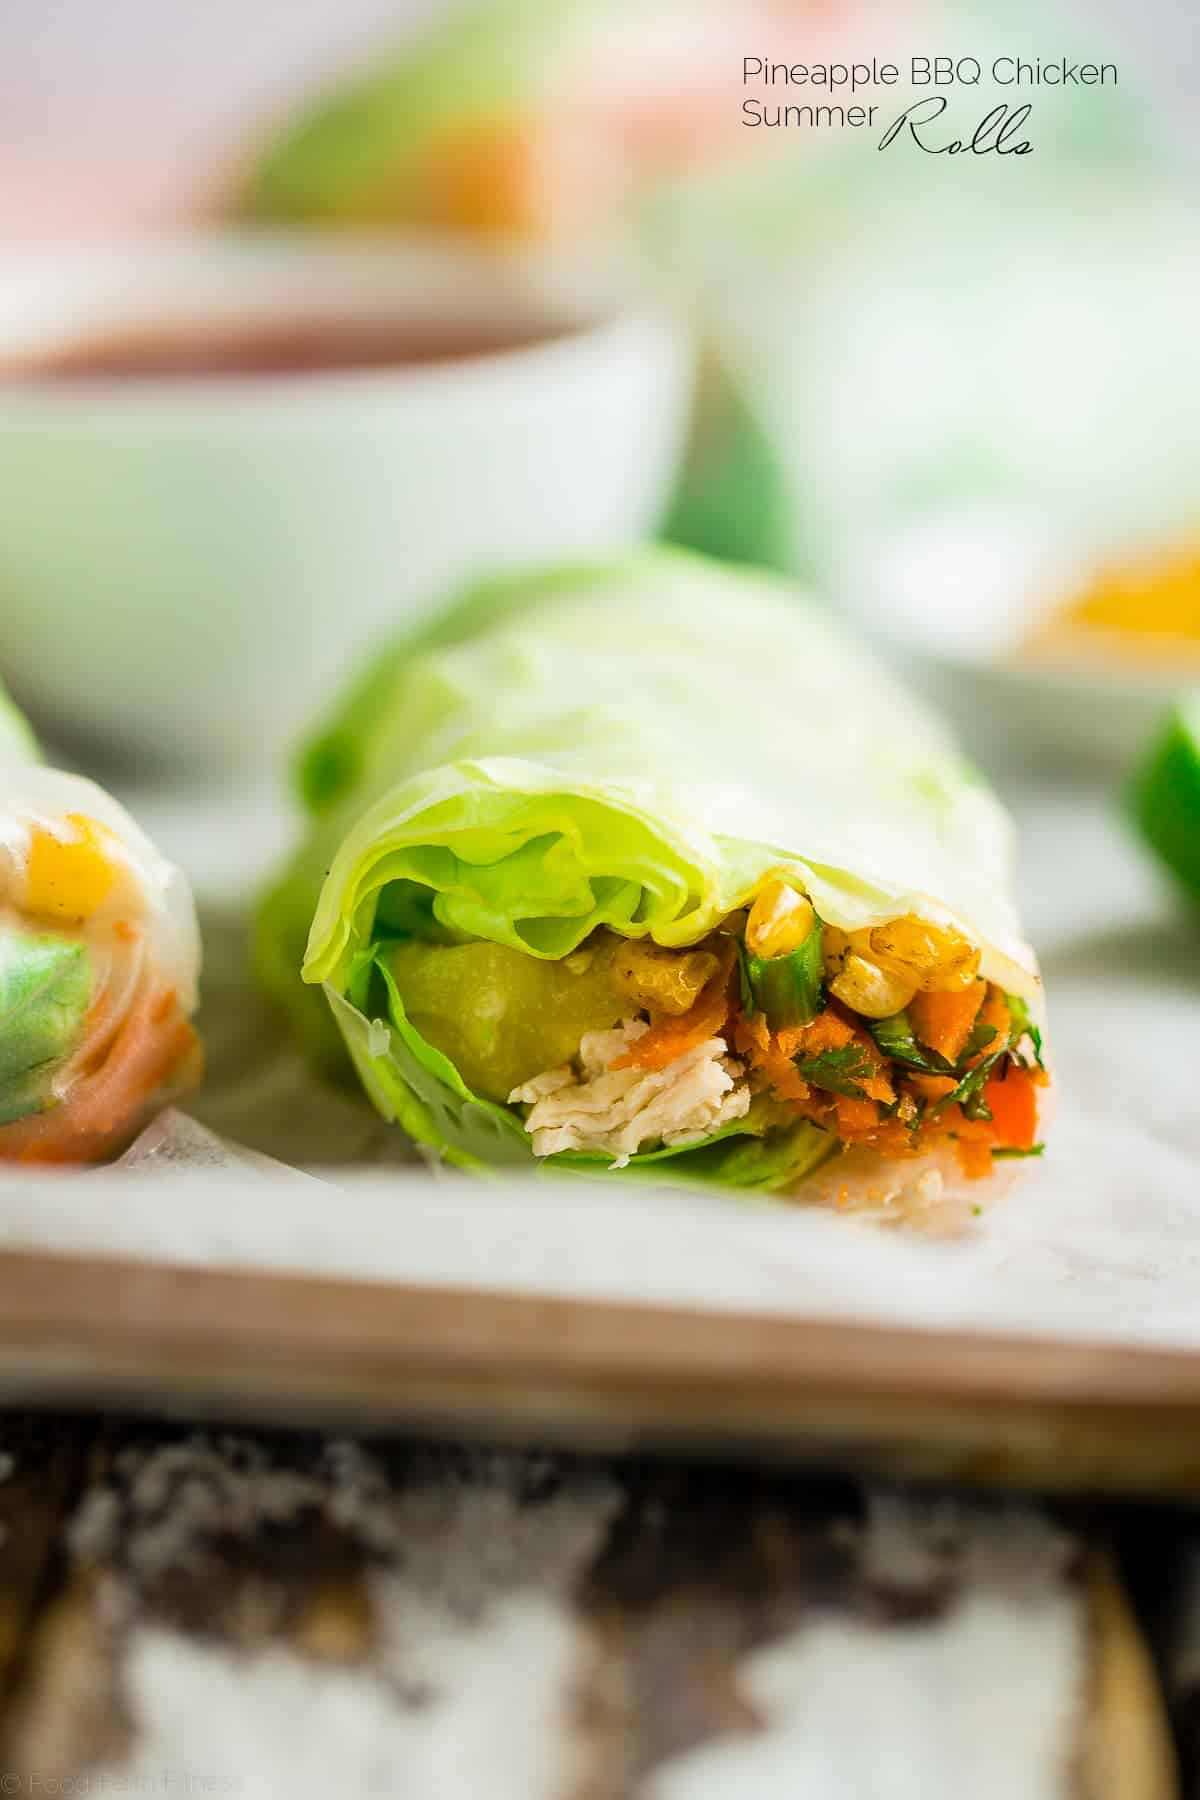 Healthy BBQ Chicken Summer Rolls - The classic Thai Summer Rolls get a fun, gluten free makeover with chicken, homemade BBQ sauce and sweet pineapple. Perfect for a light dinner or to serve on game day! | Foodfaithfitness.com | @FoodFaithFit